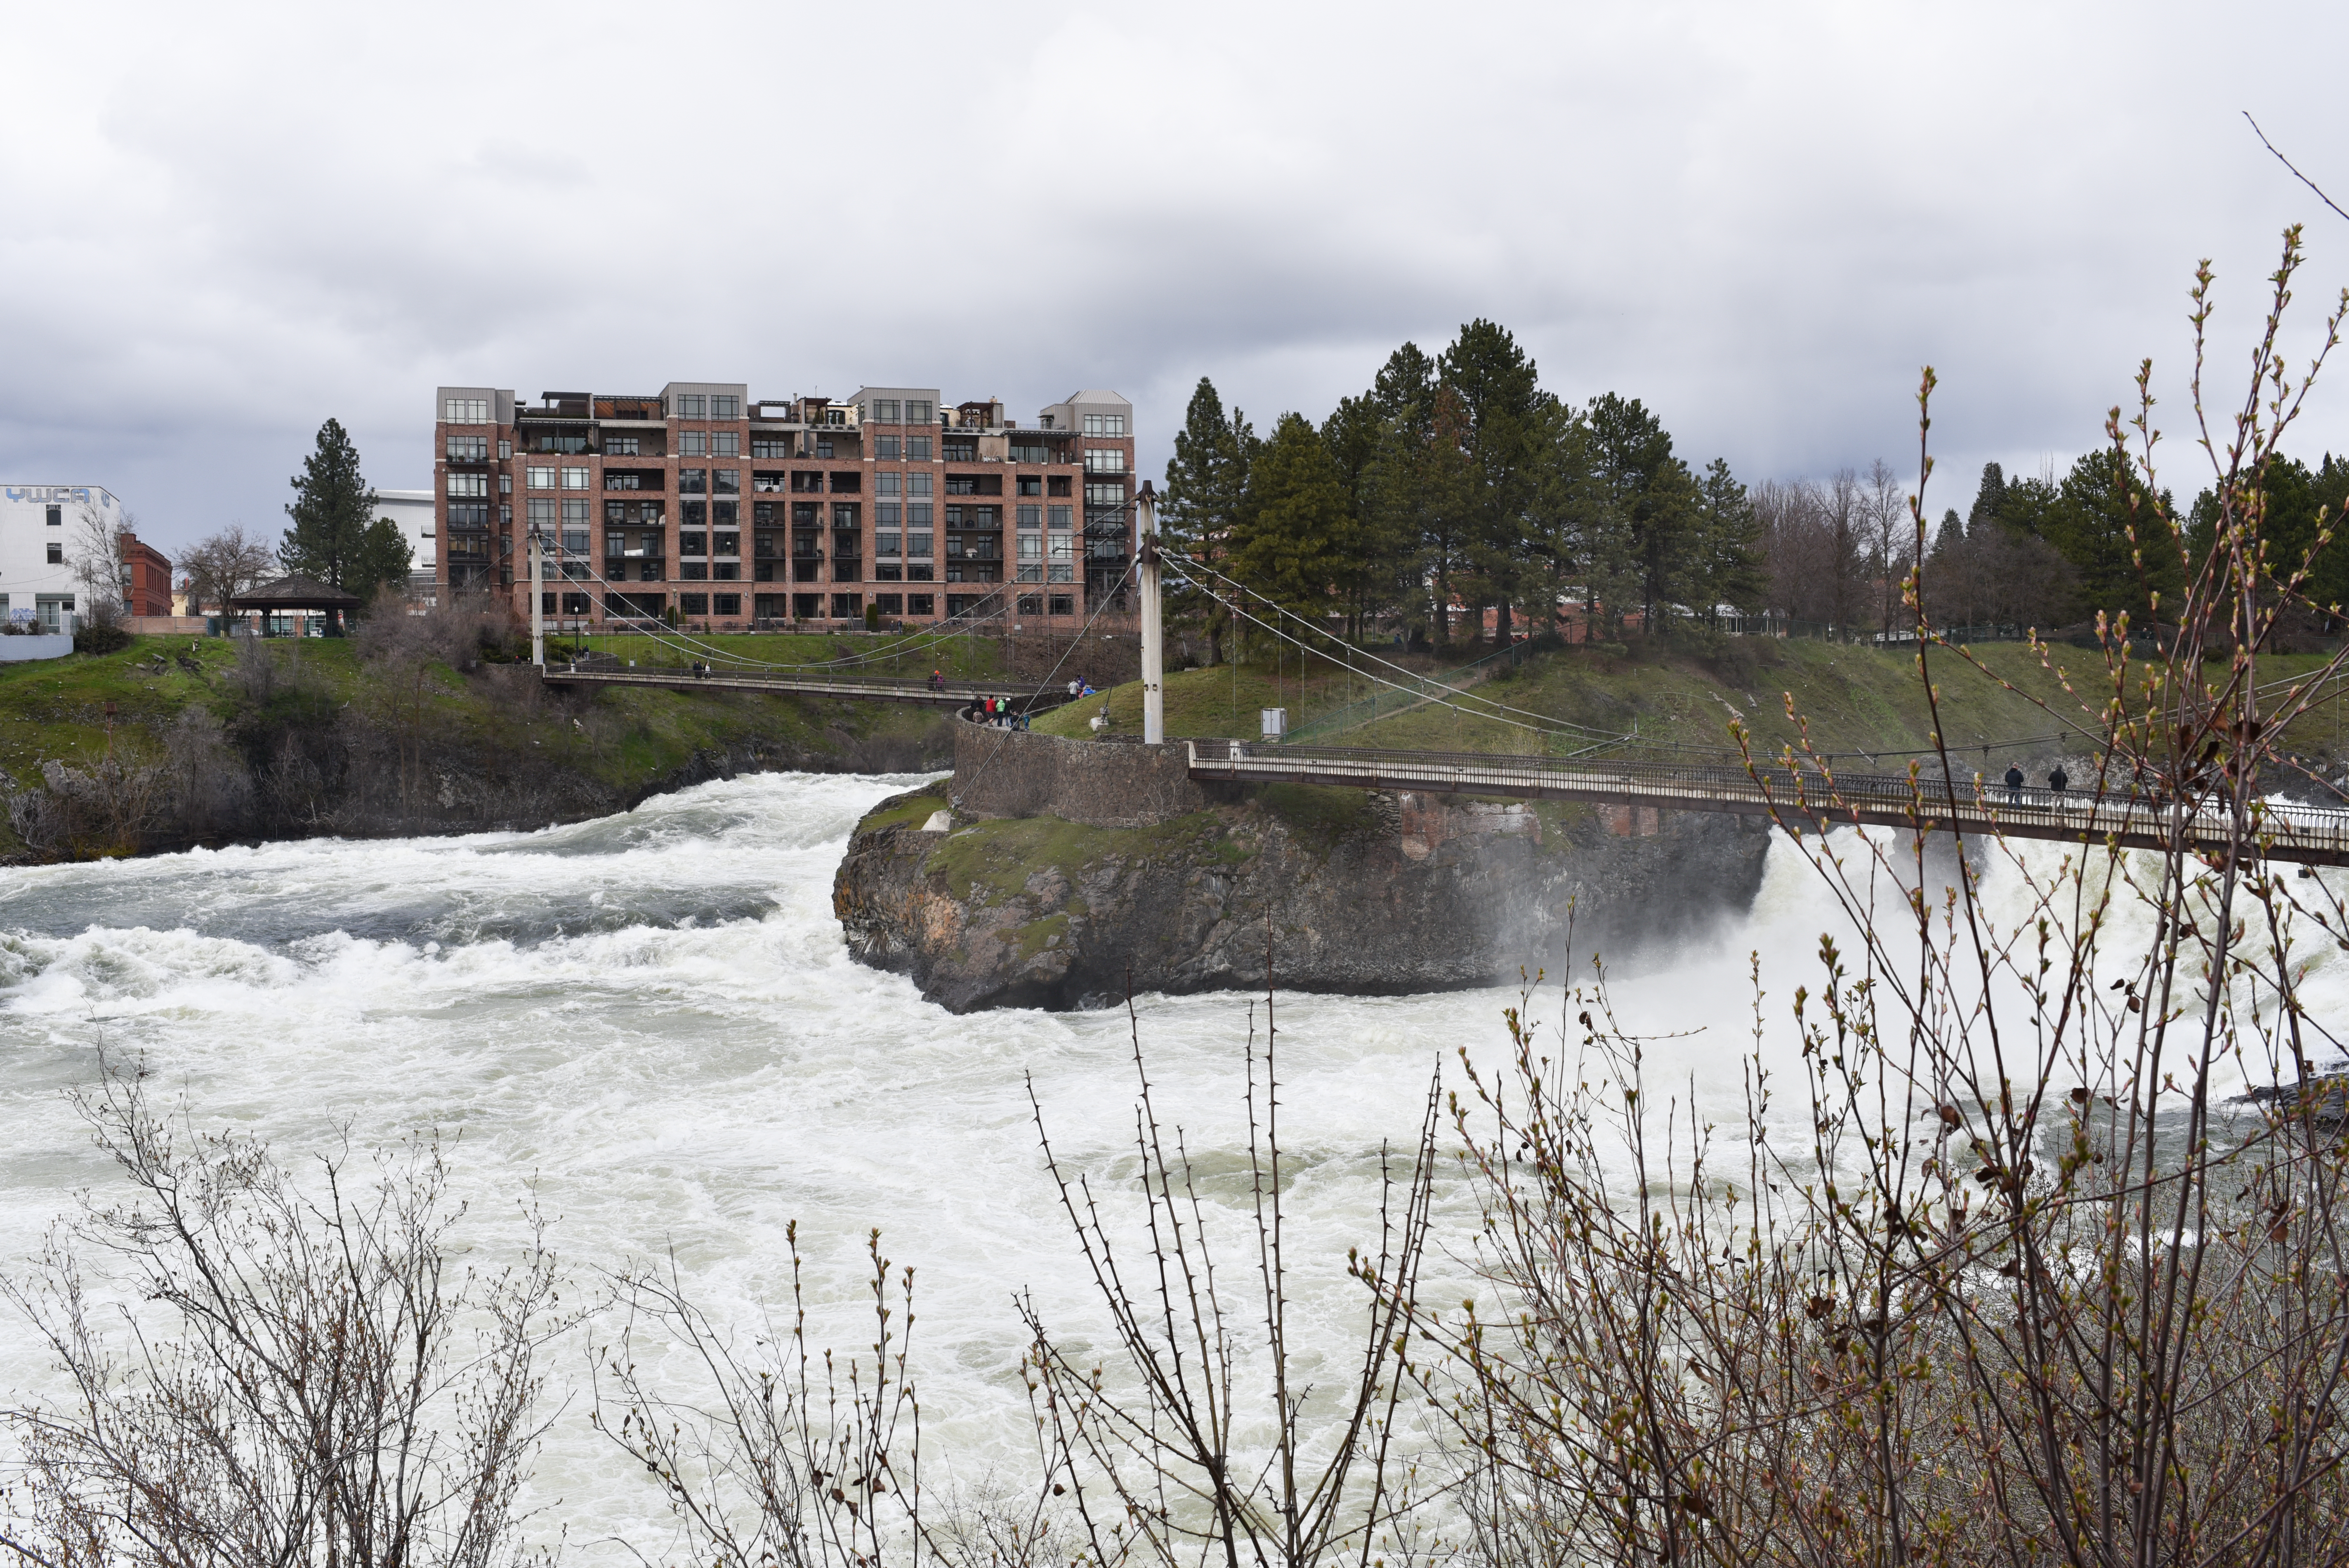 Washington's second-largest metro area lies east of the mountains and is often overlooked as a weekend getaway. But don't overlook Spokane. This city has a lot going on and has an impressive food scene. (Image: Rebecca Mongrain/Seattle Refined)